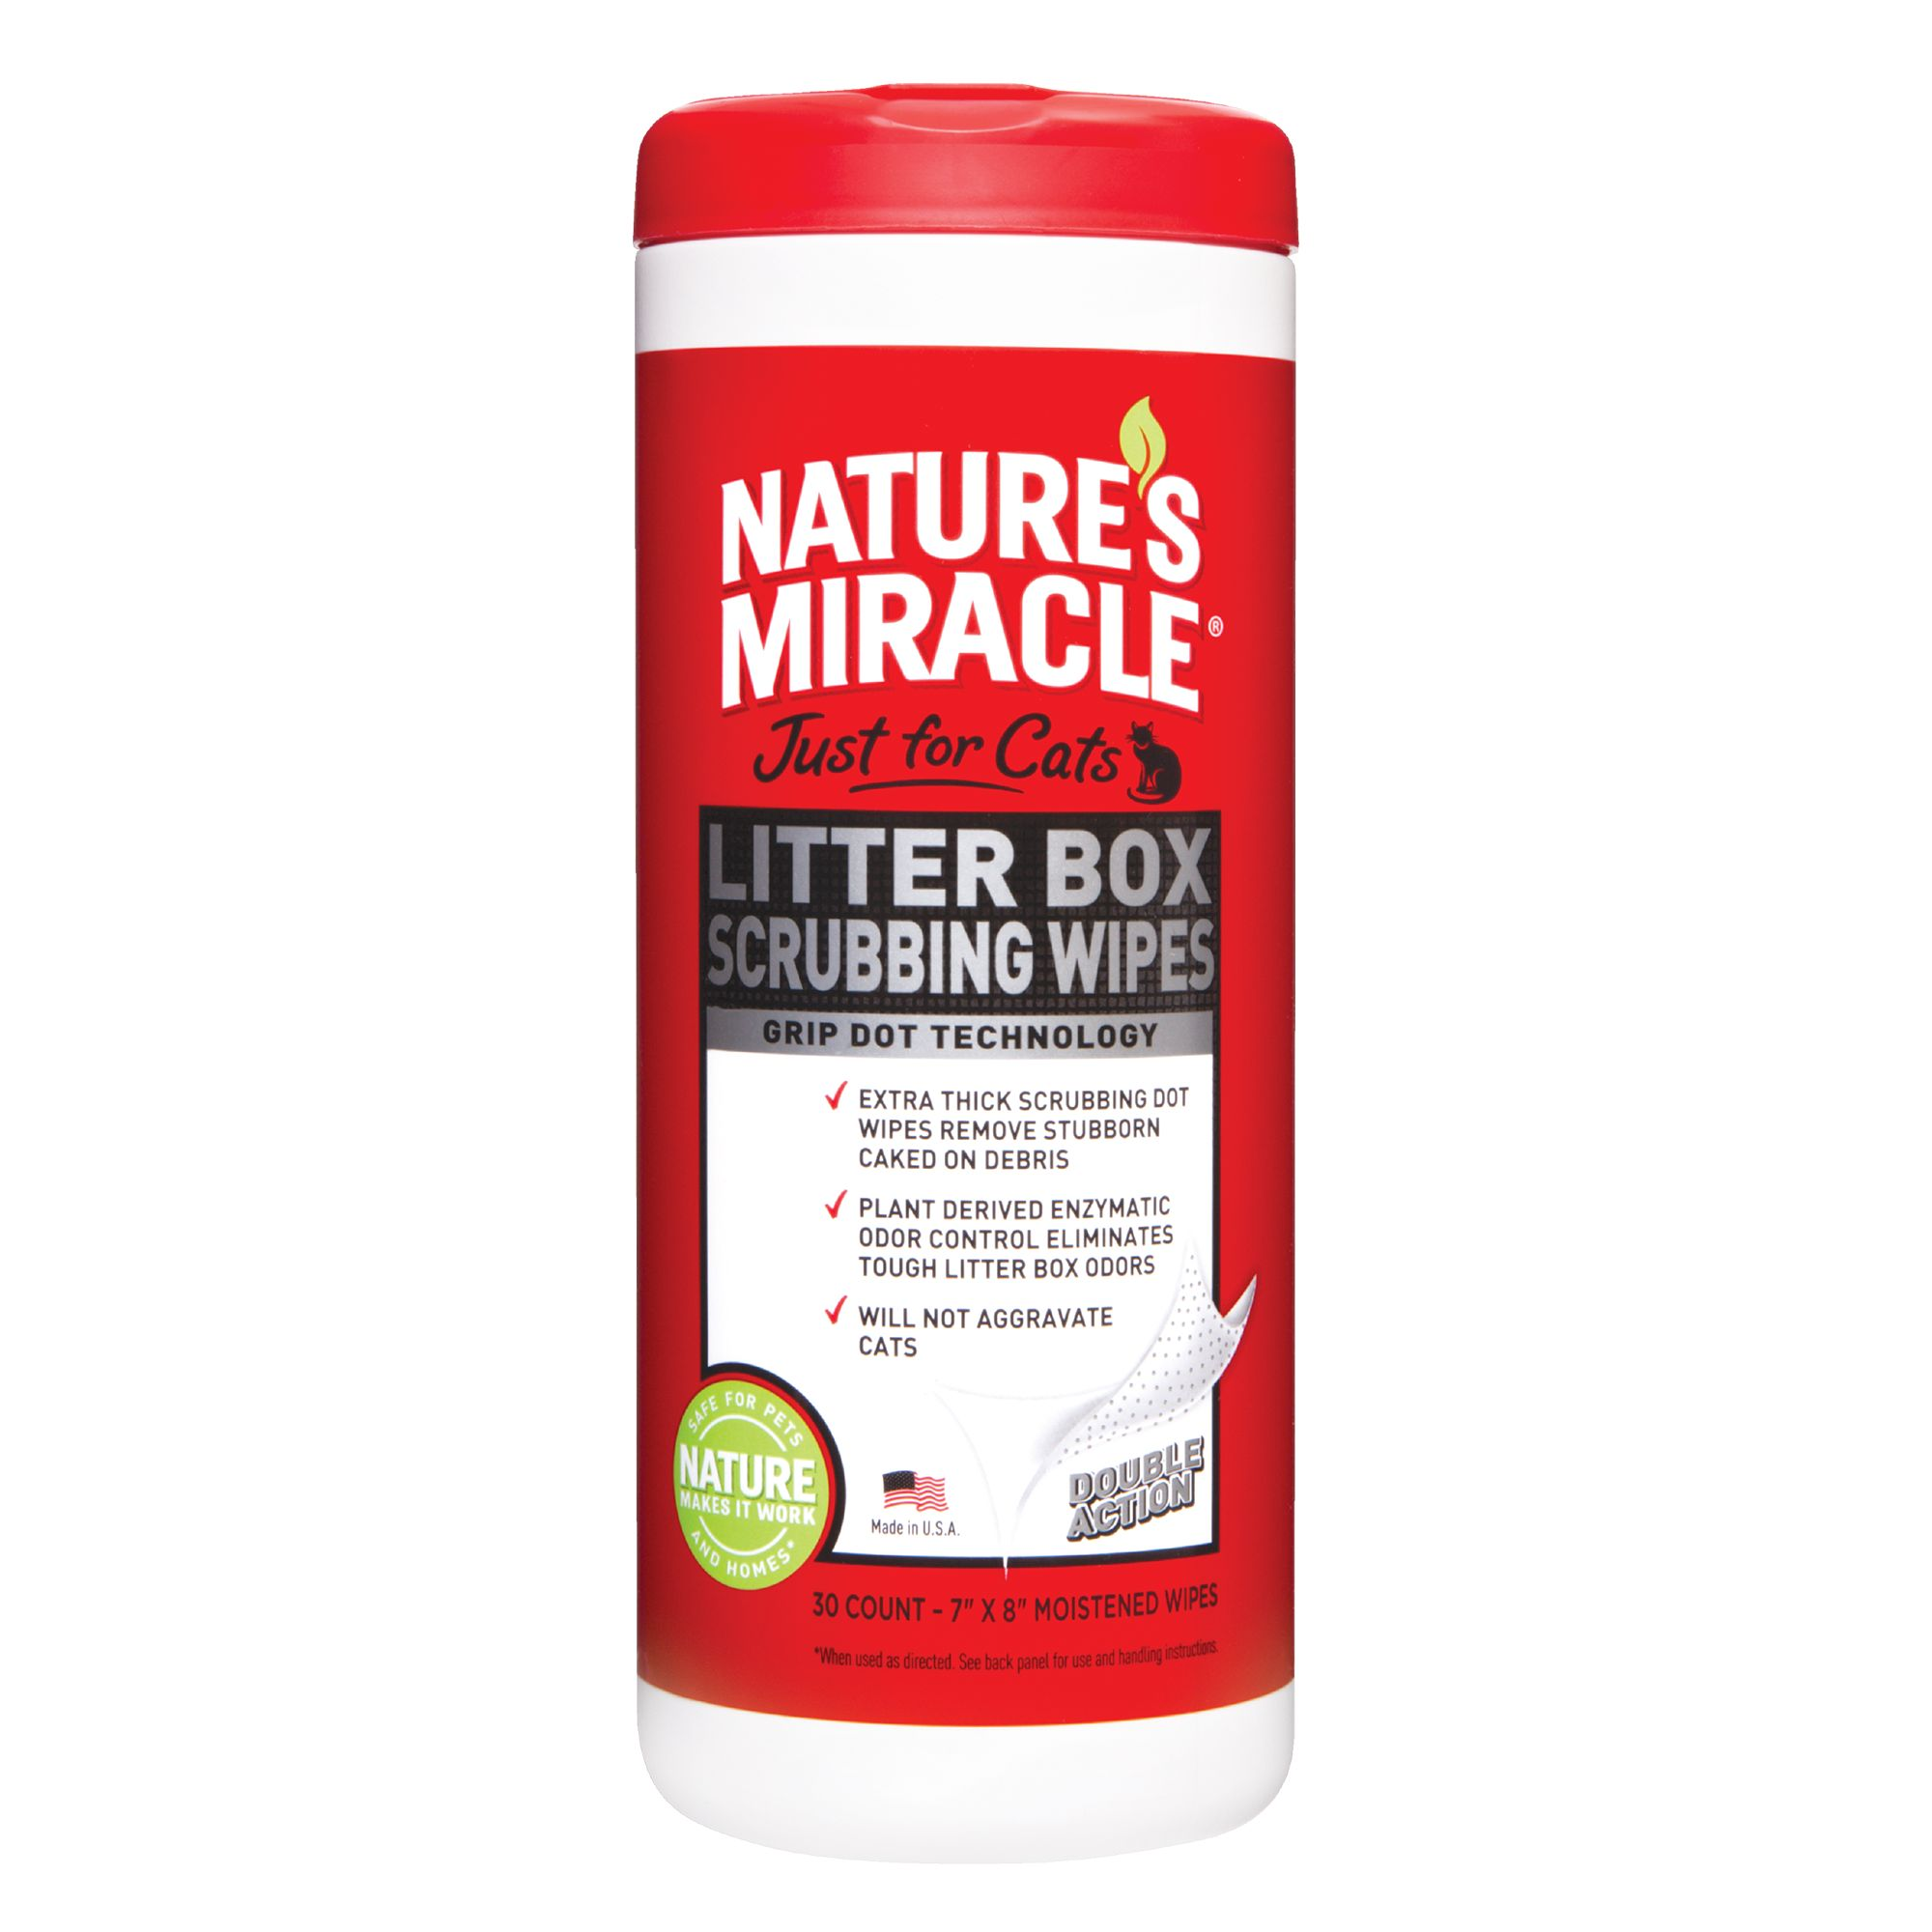 Nature's Miracle, Litter Box Wipes size: 30 Count 5218601